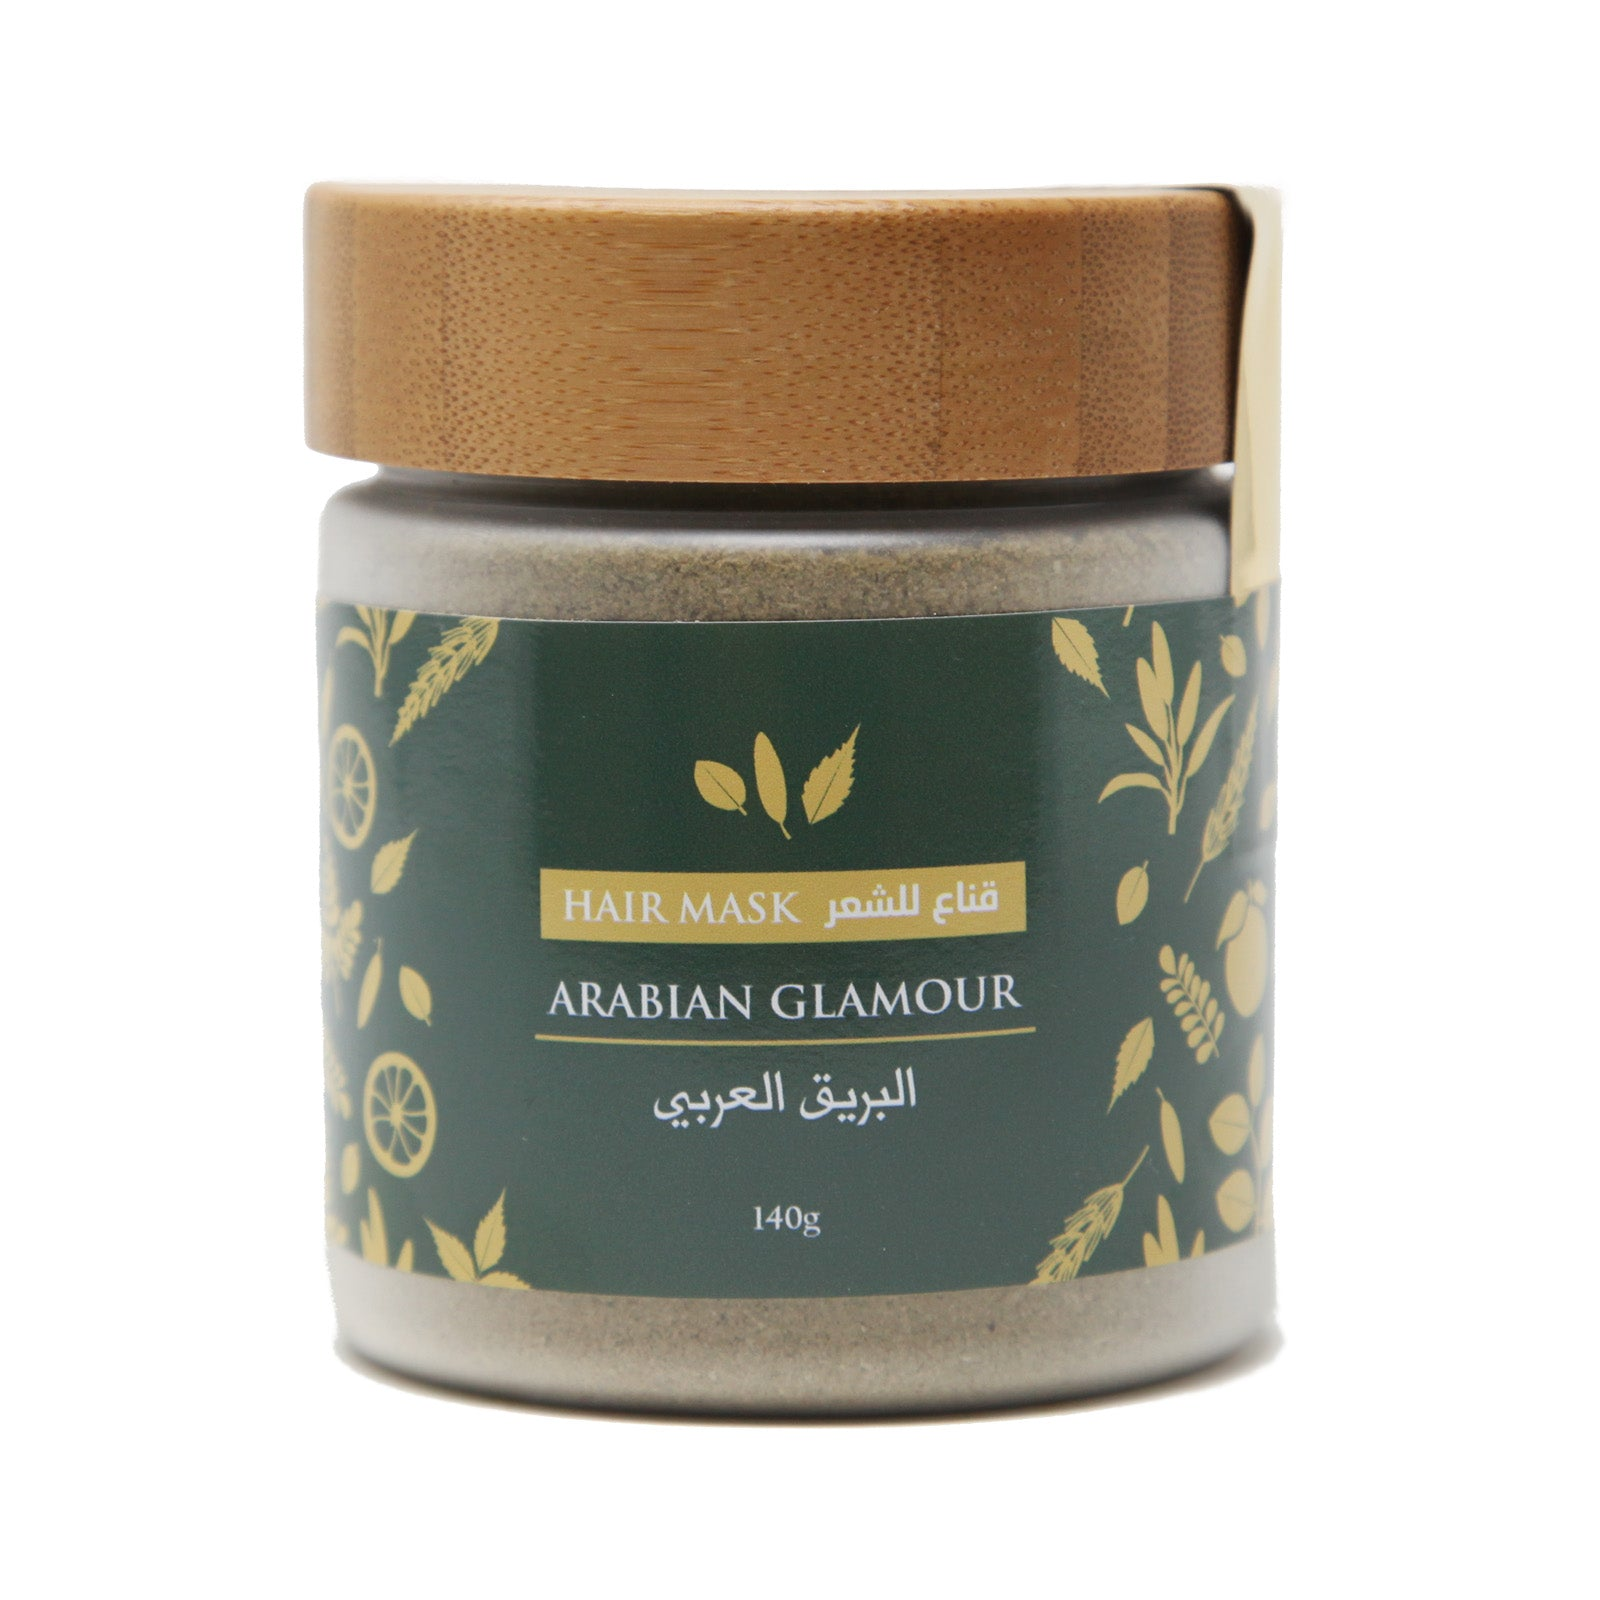 Arabian Glamour Hair Mask - 140g